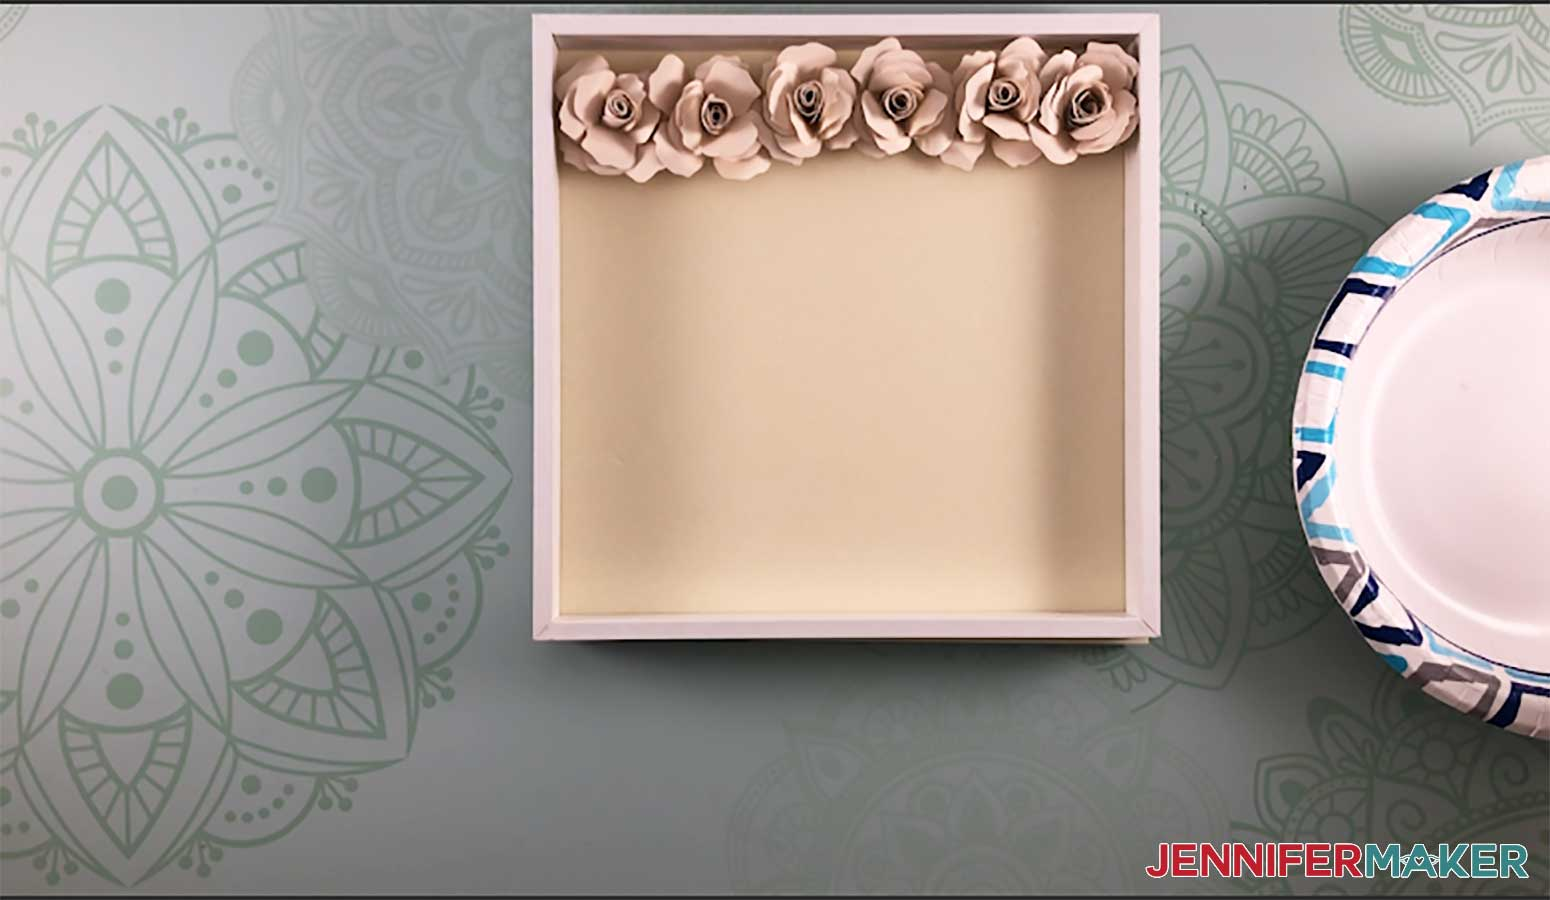 Arrange paper roses to make a paper flower shadow box